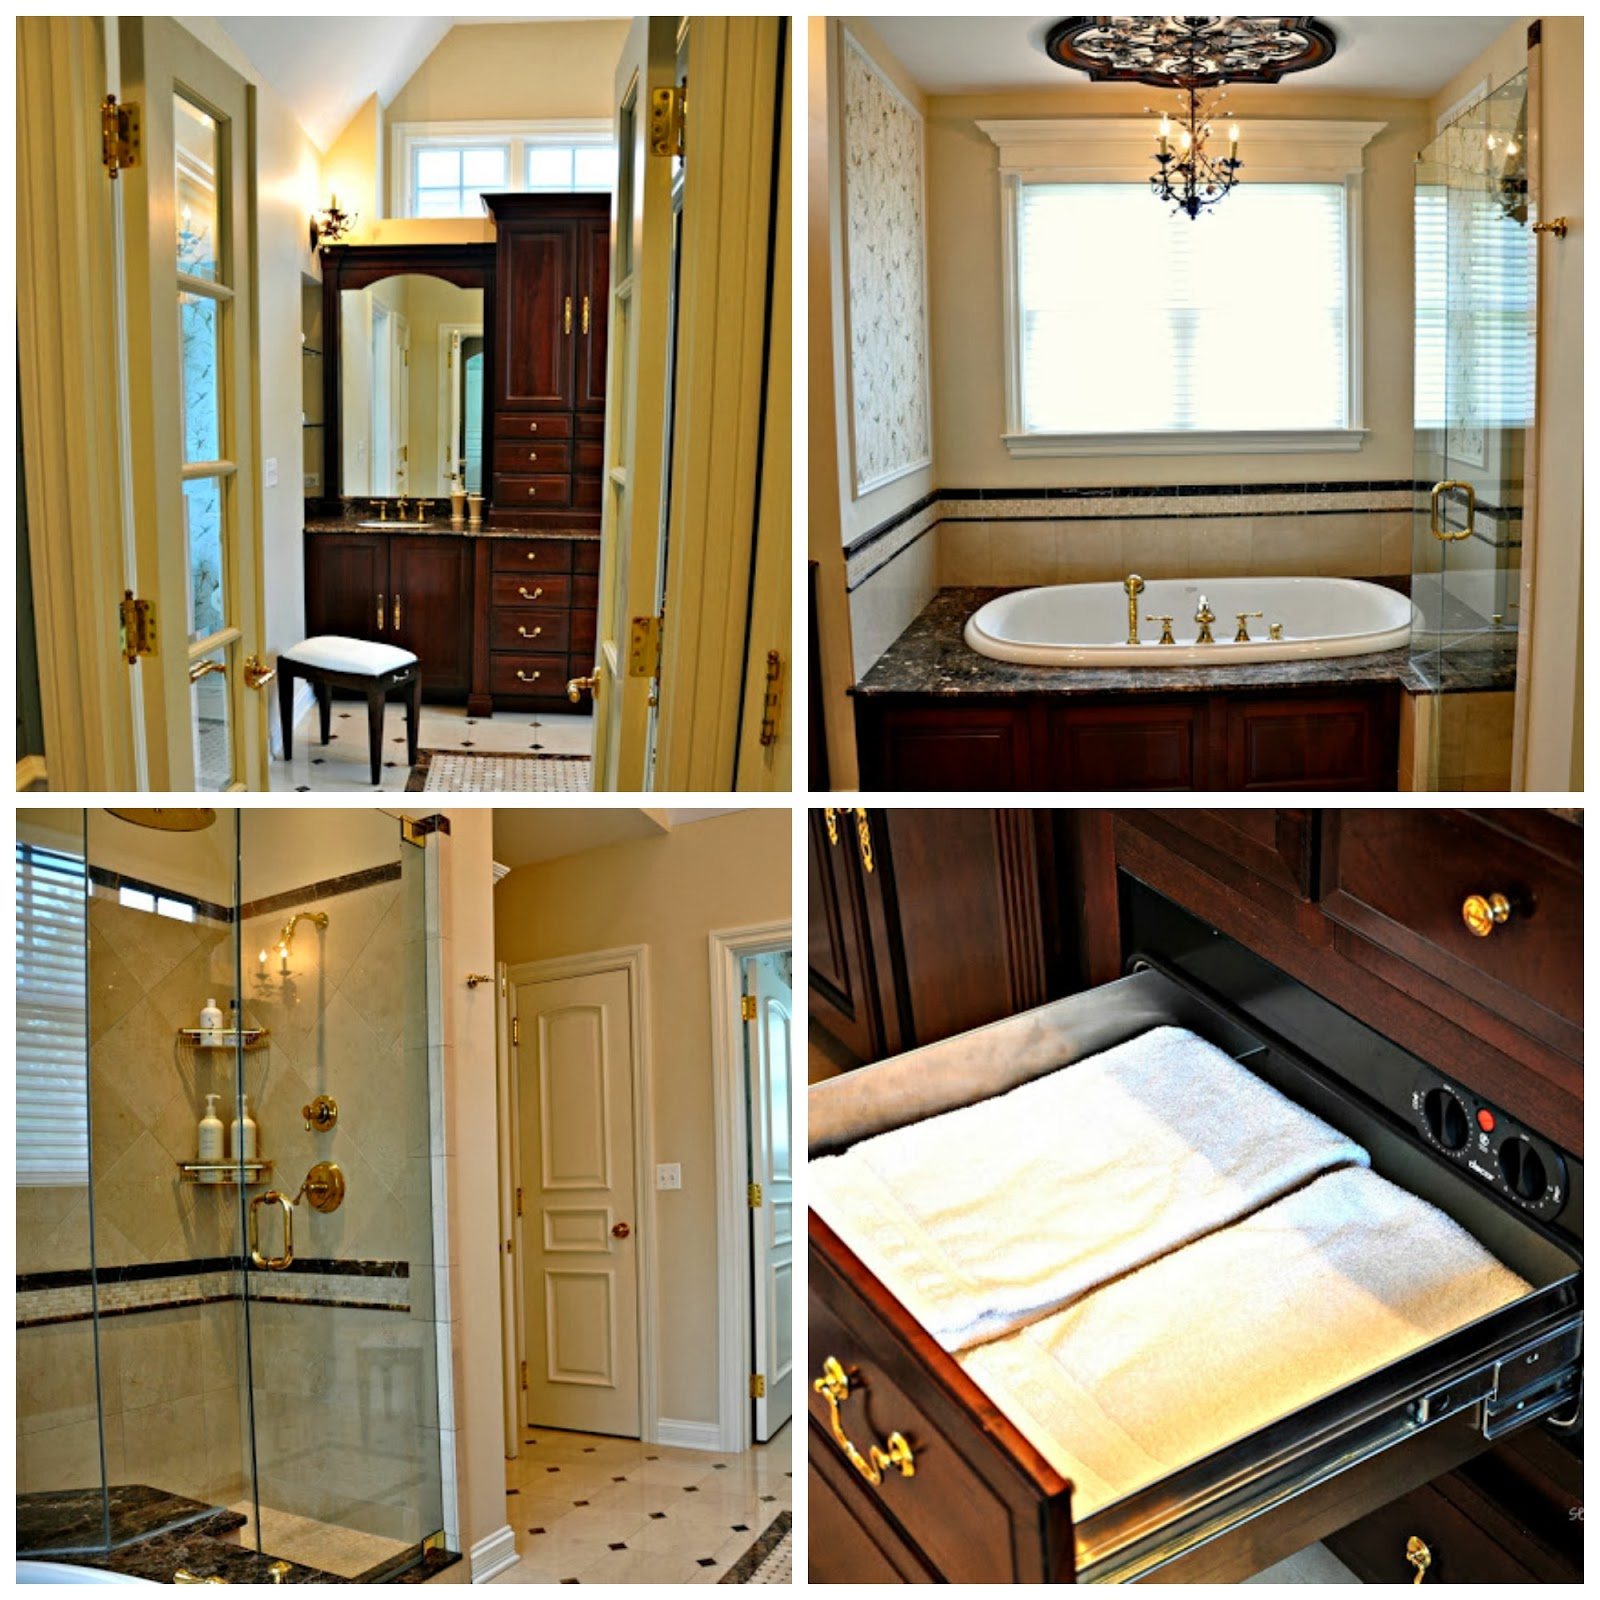 Attirant Marble And Granite Master Bathroom With Towel Warming Drawer